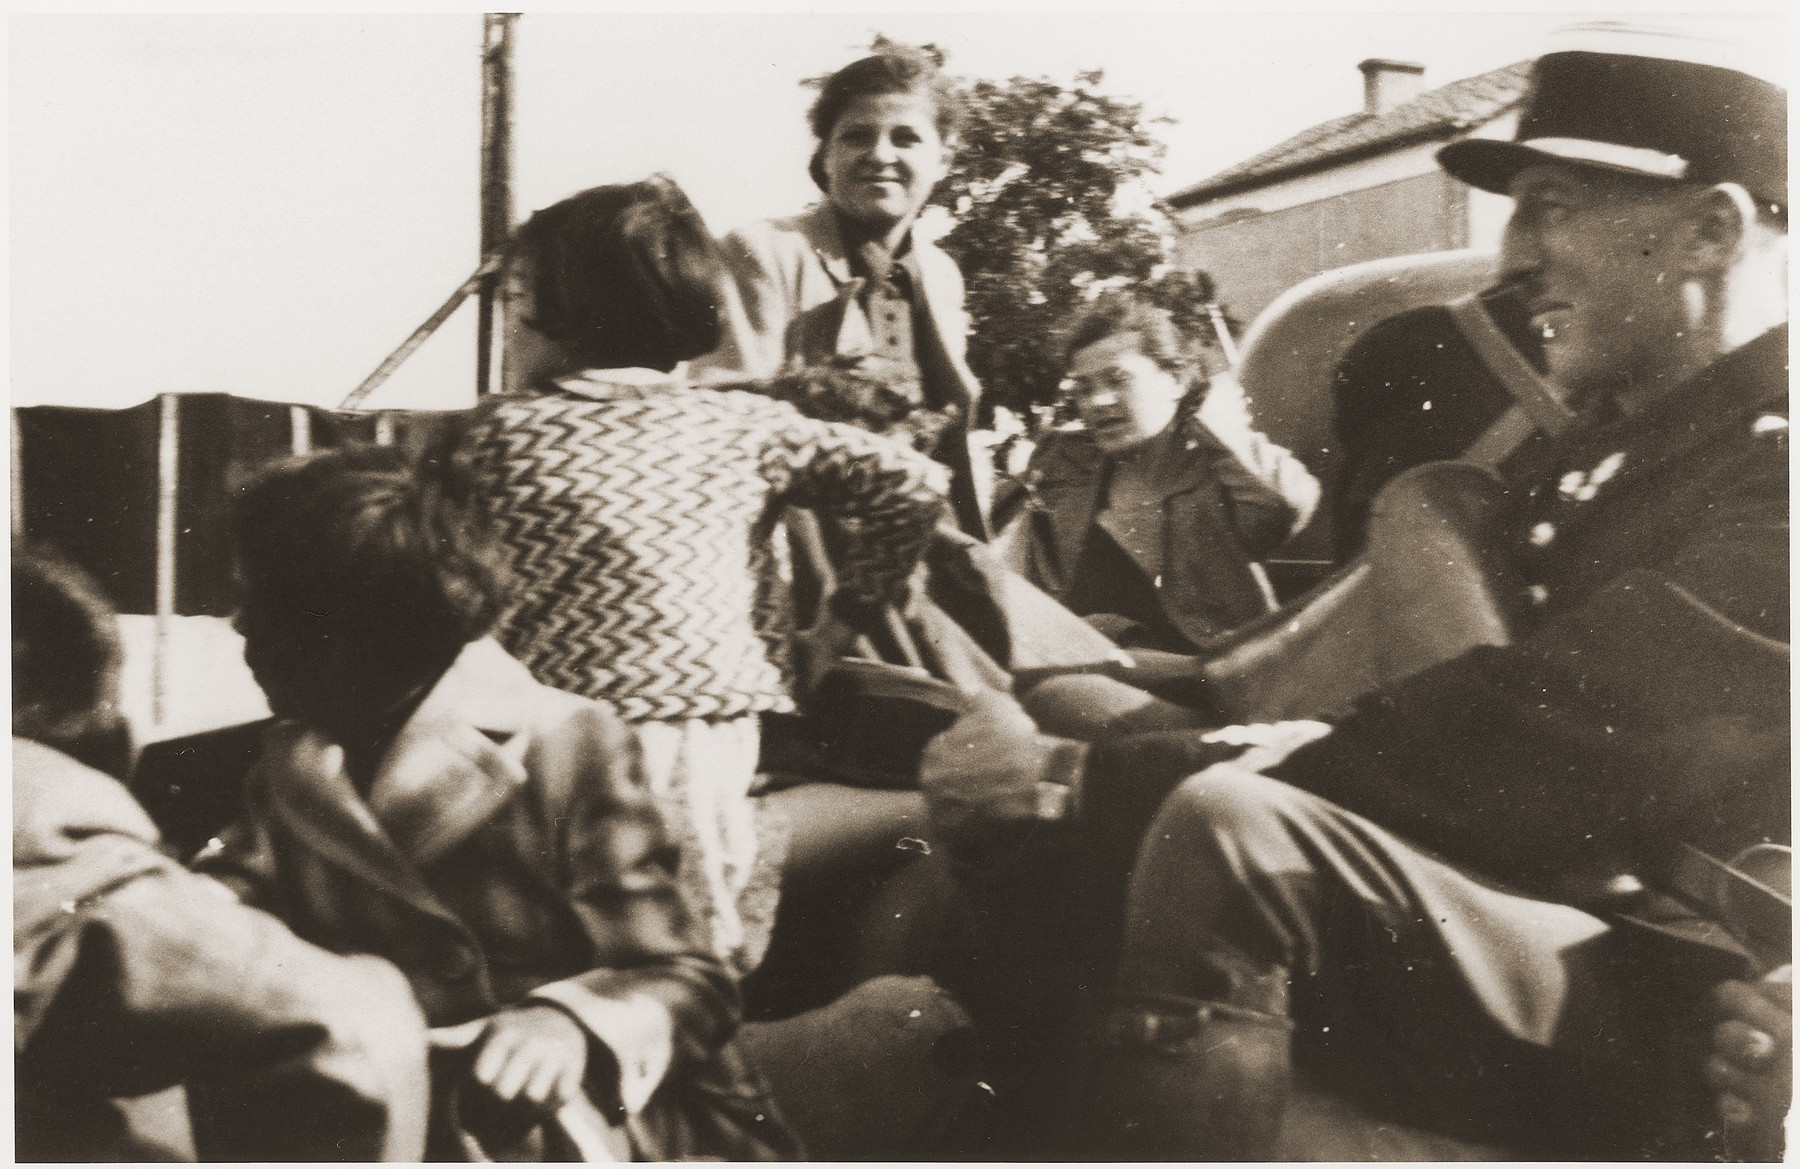 A group or children taken from the Pringy children's colony to Rivesaltes are allowed to return home due to the intervention of Maurice Dubois (French coordinator of the Swiss Red Cross).